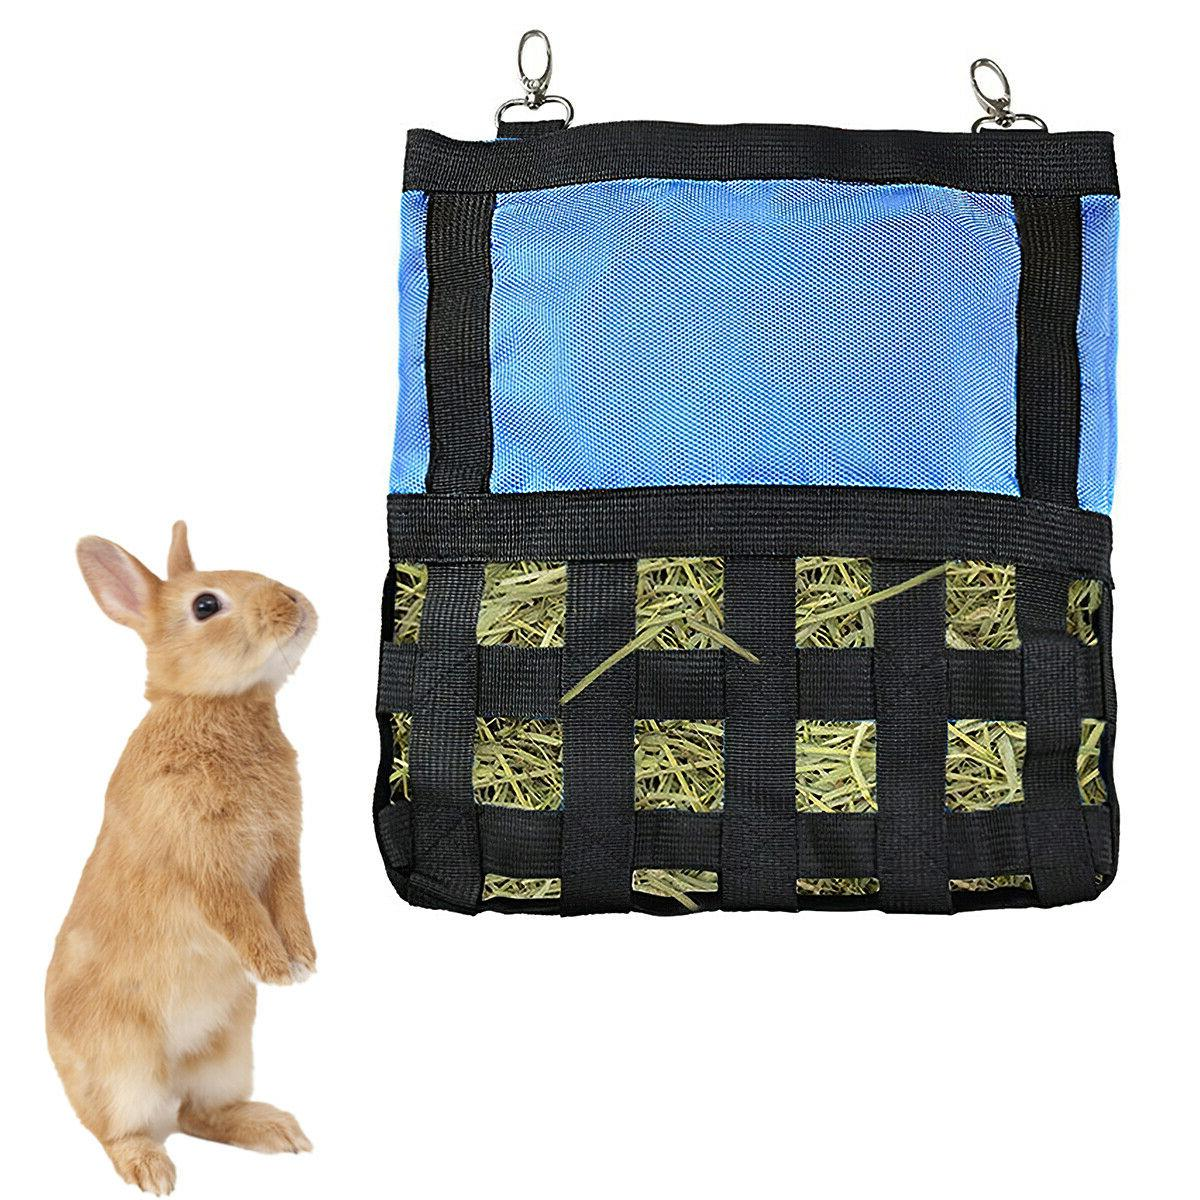 Small for Rabbit Storage Bag